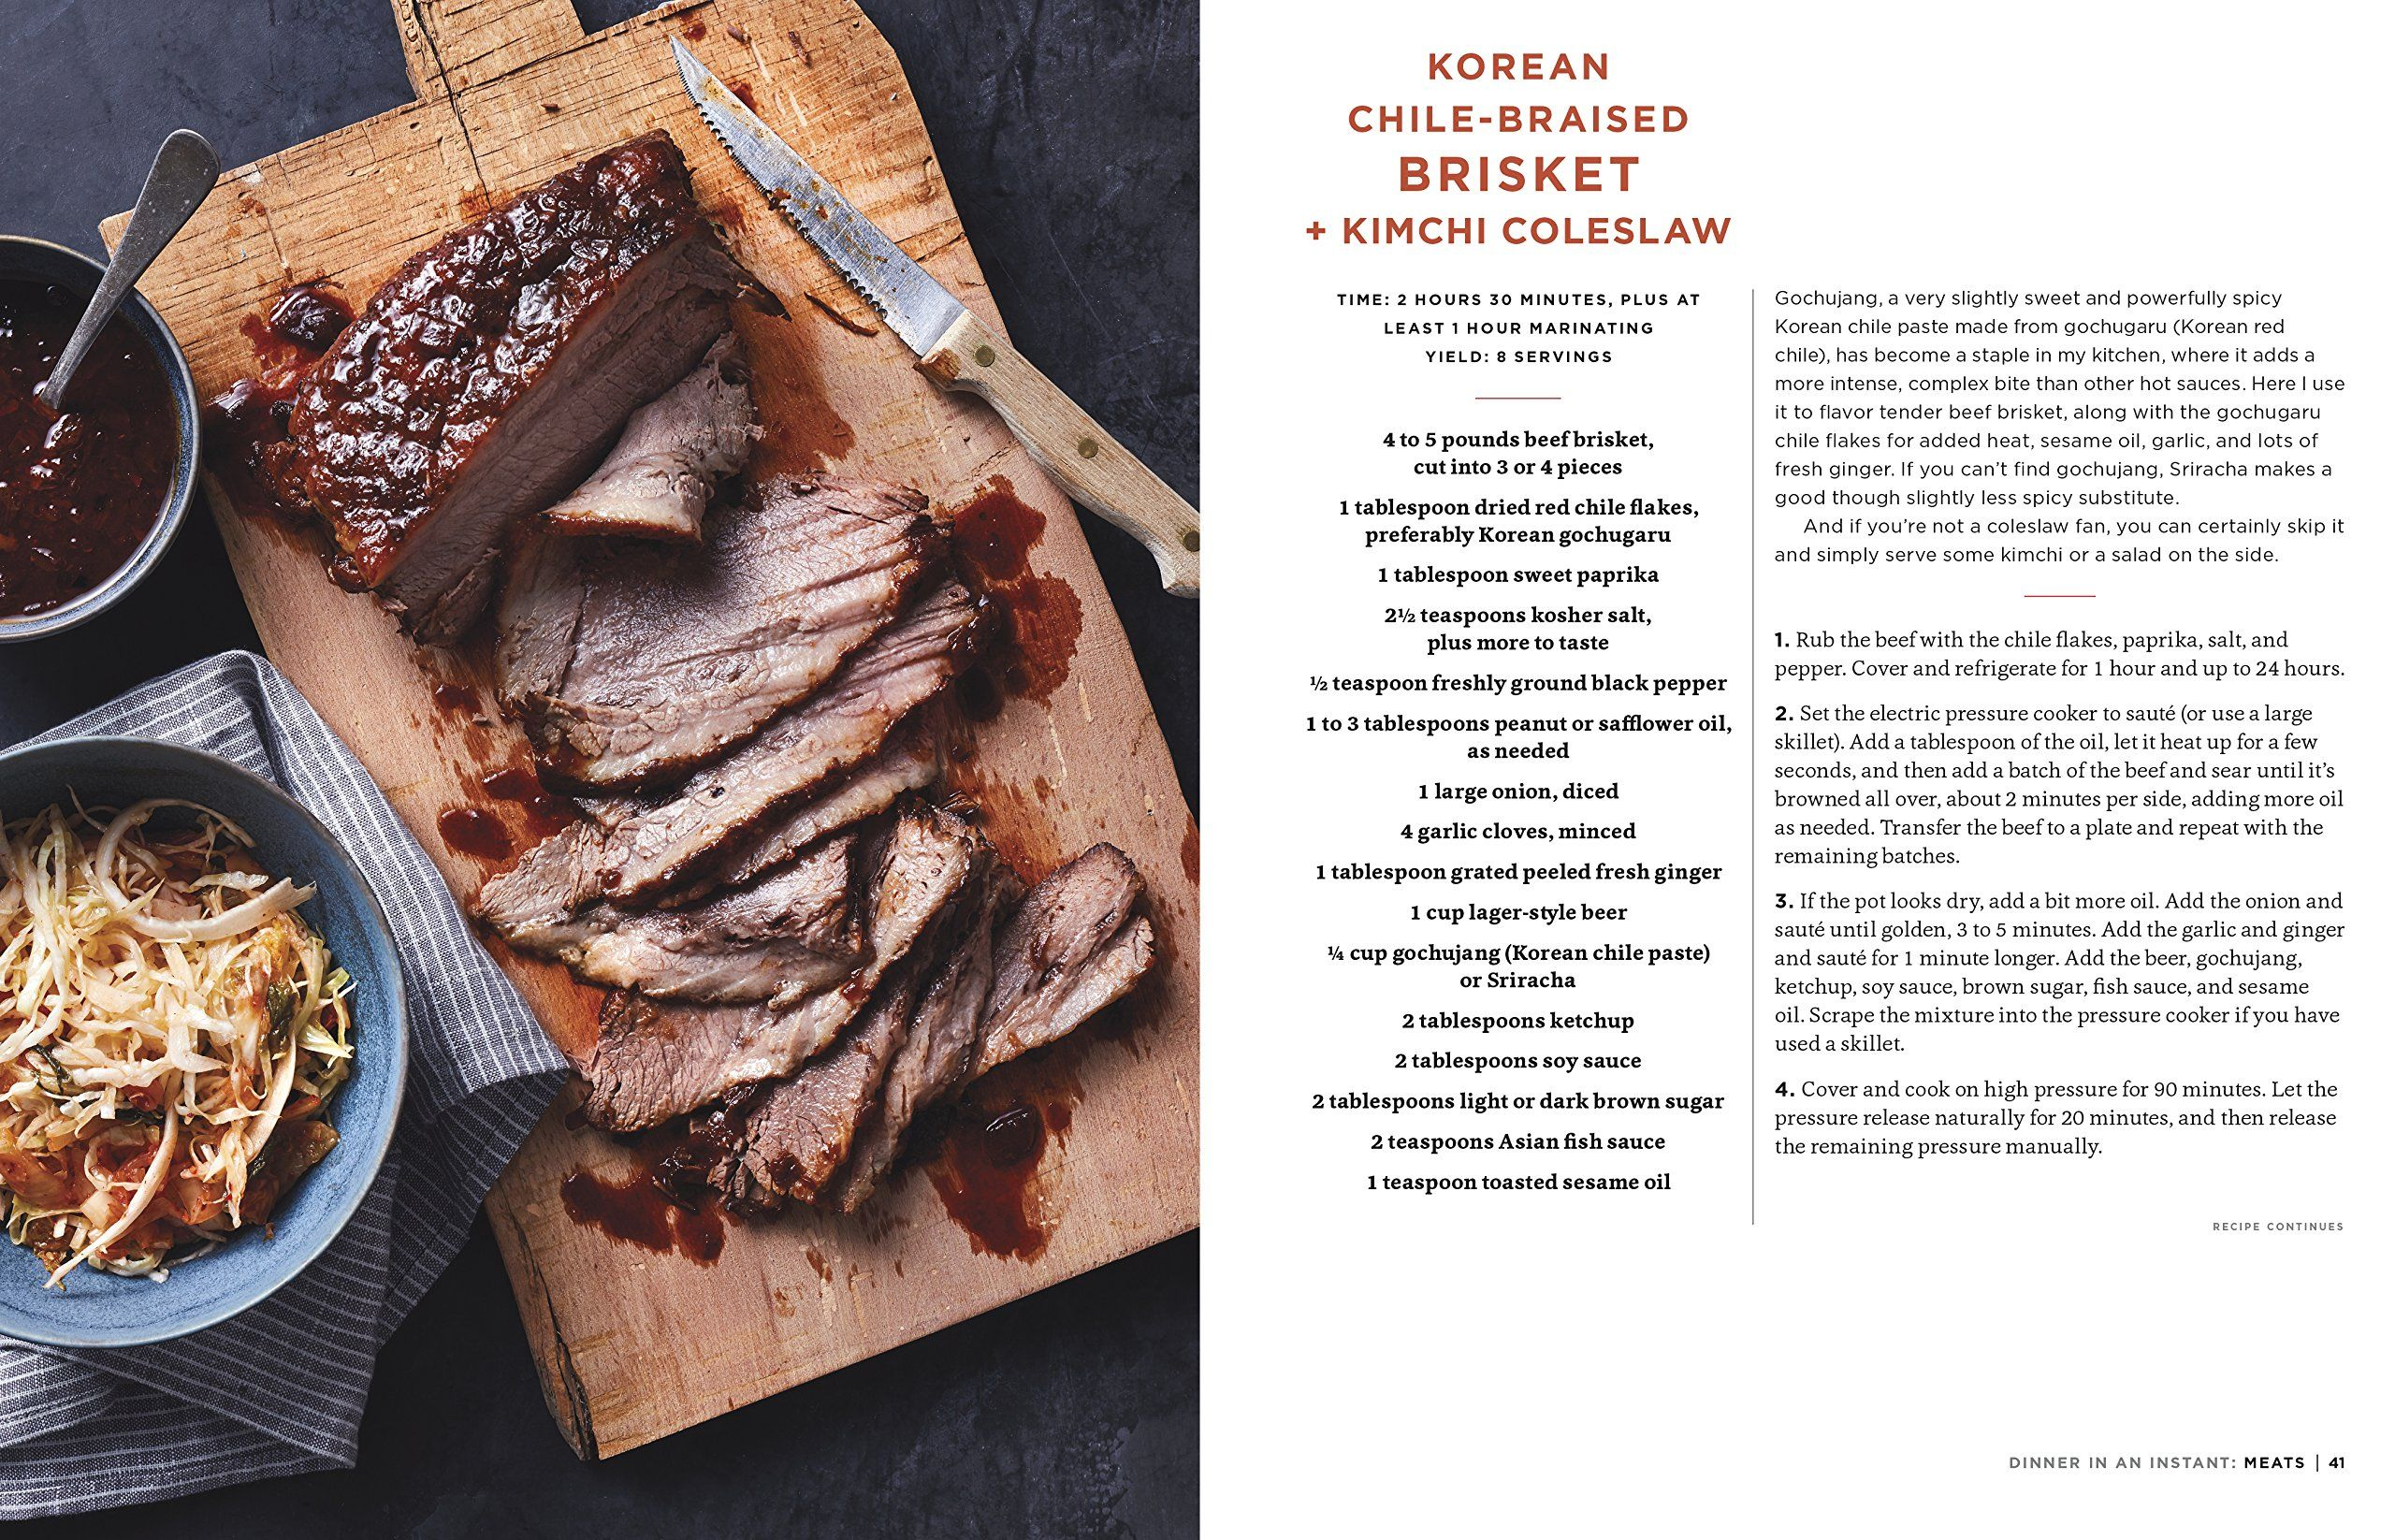 Dinner in an Instant: 75 Modern Recipes for Your Pressure